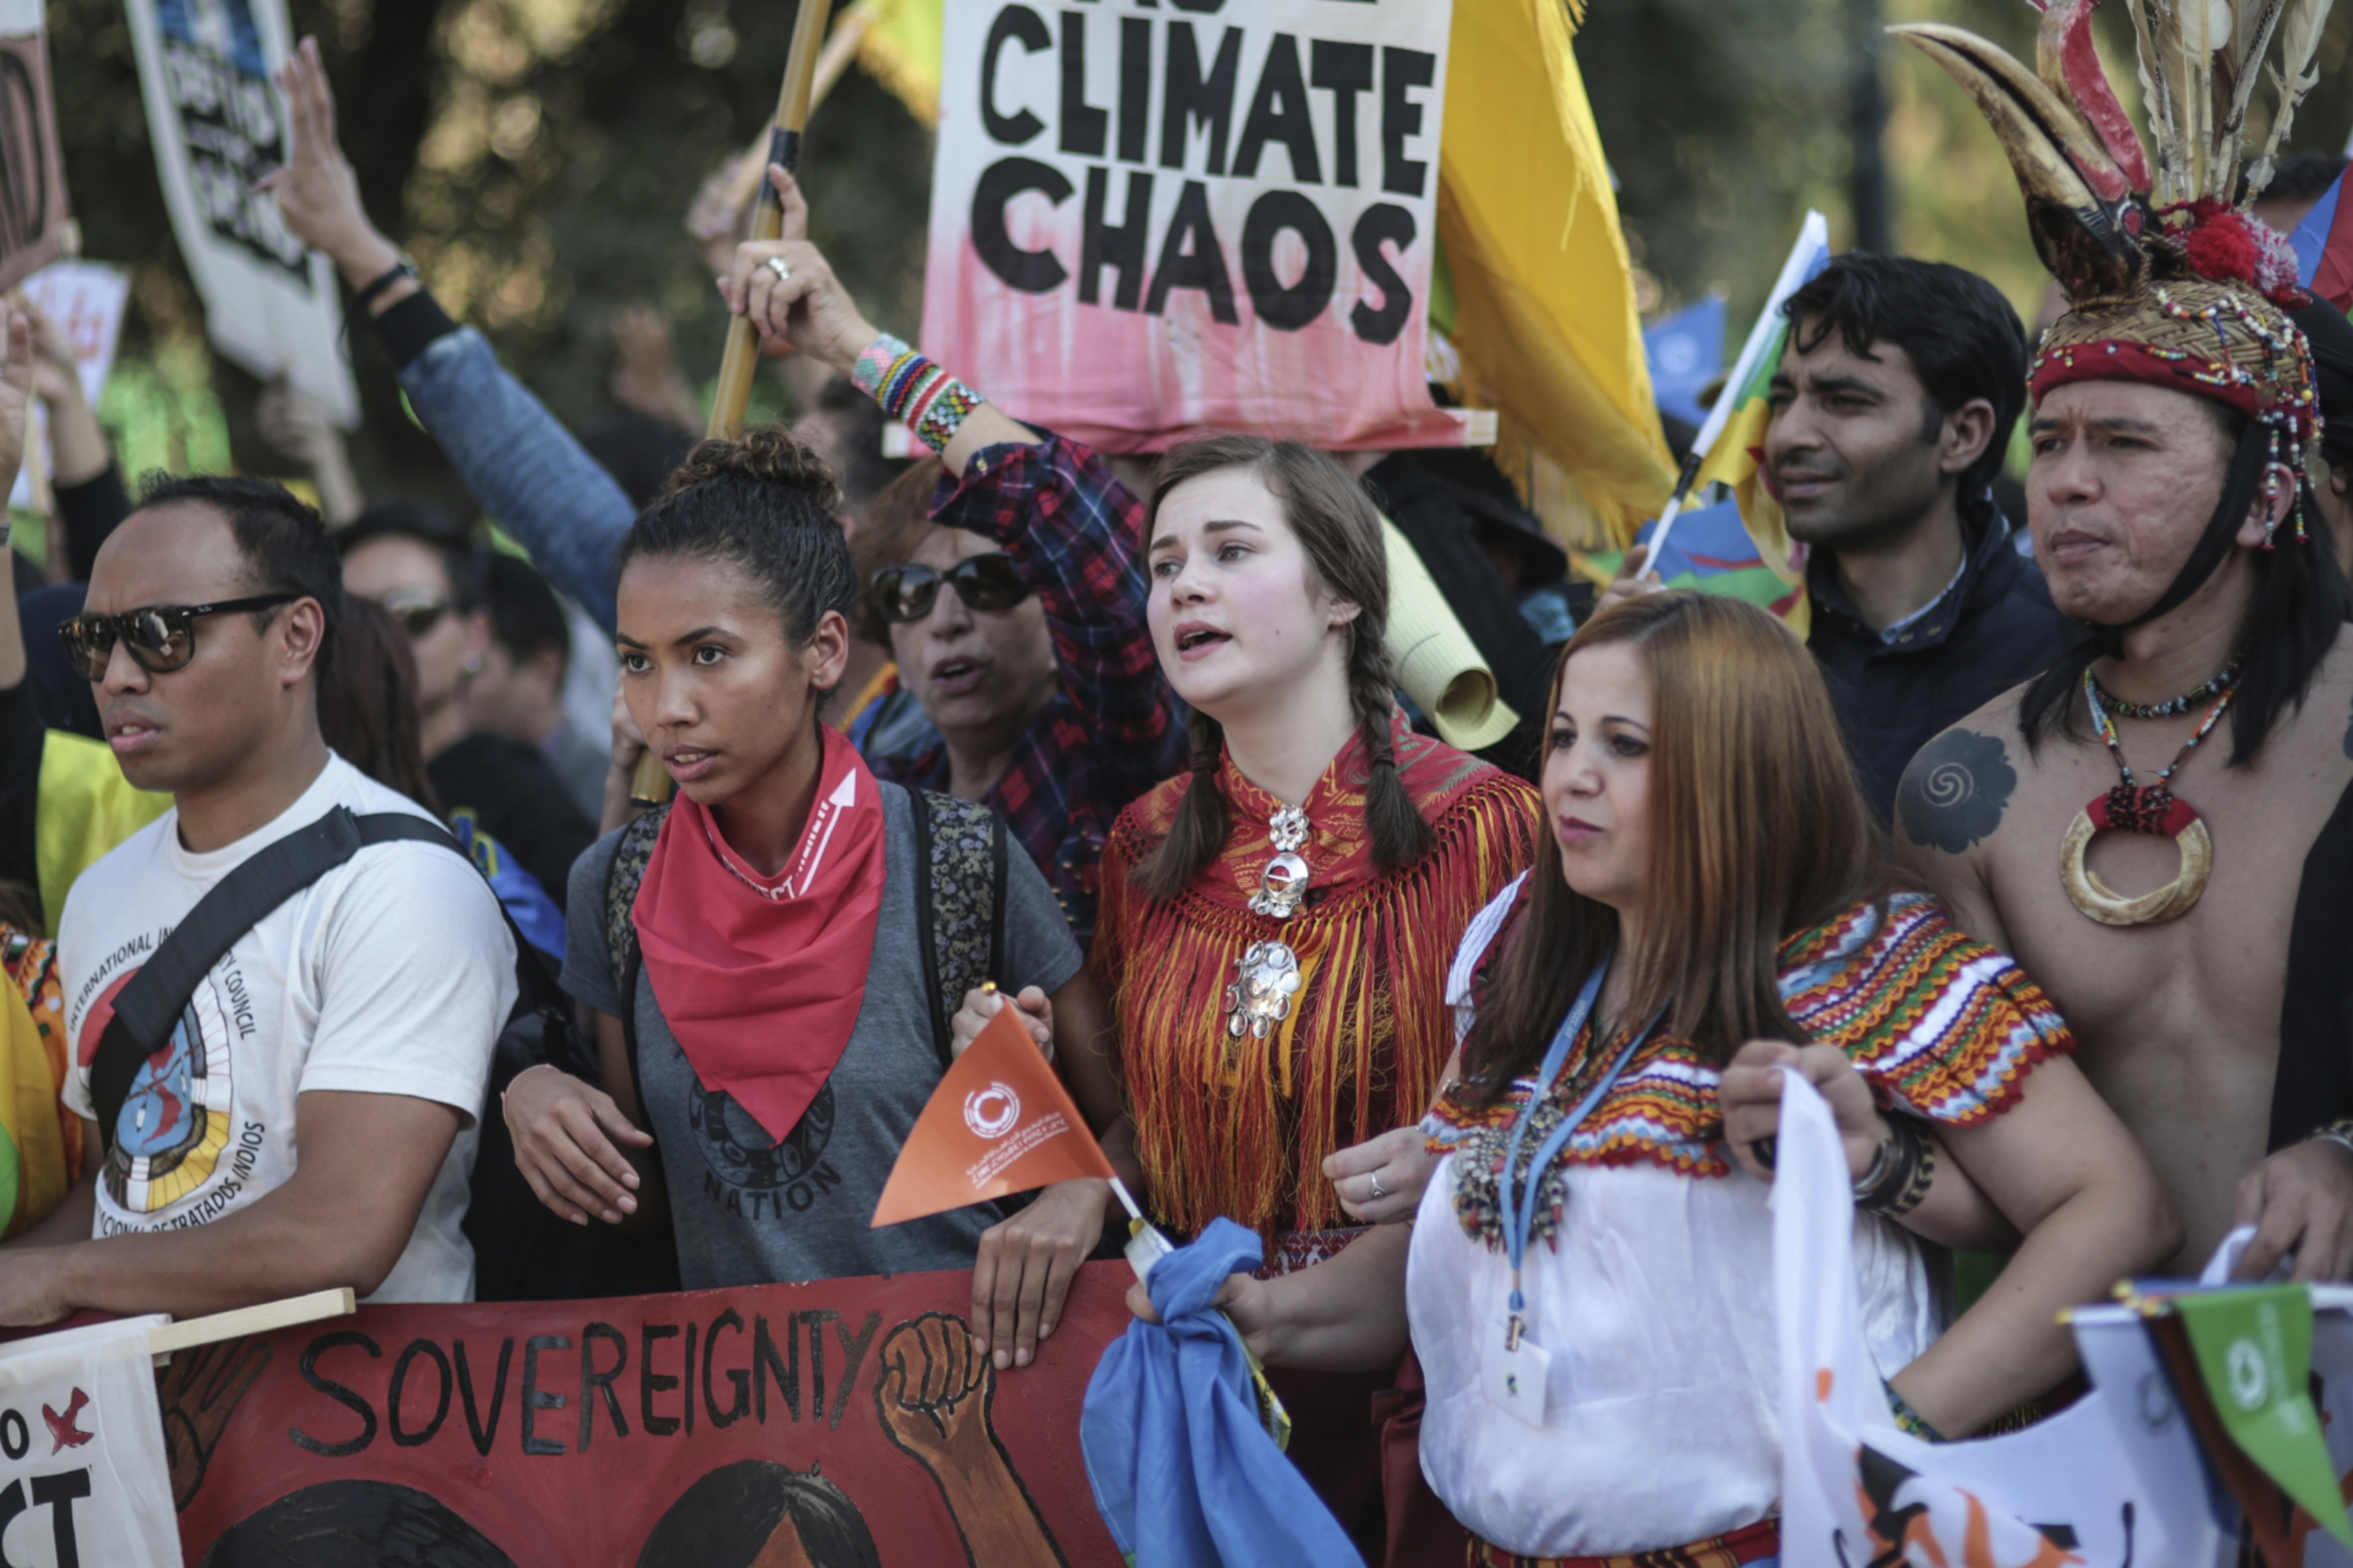 Hundreds protest against climate change and urge world leaders to take actions, in a march coinciding with the Climate Conference, known as COP22, taking place in Marrakech, Morocco.